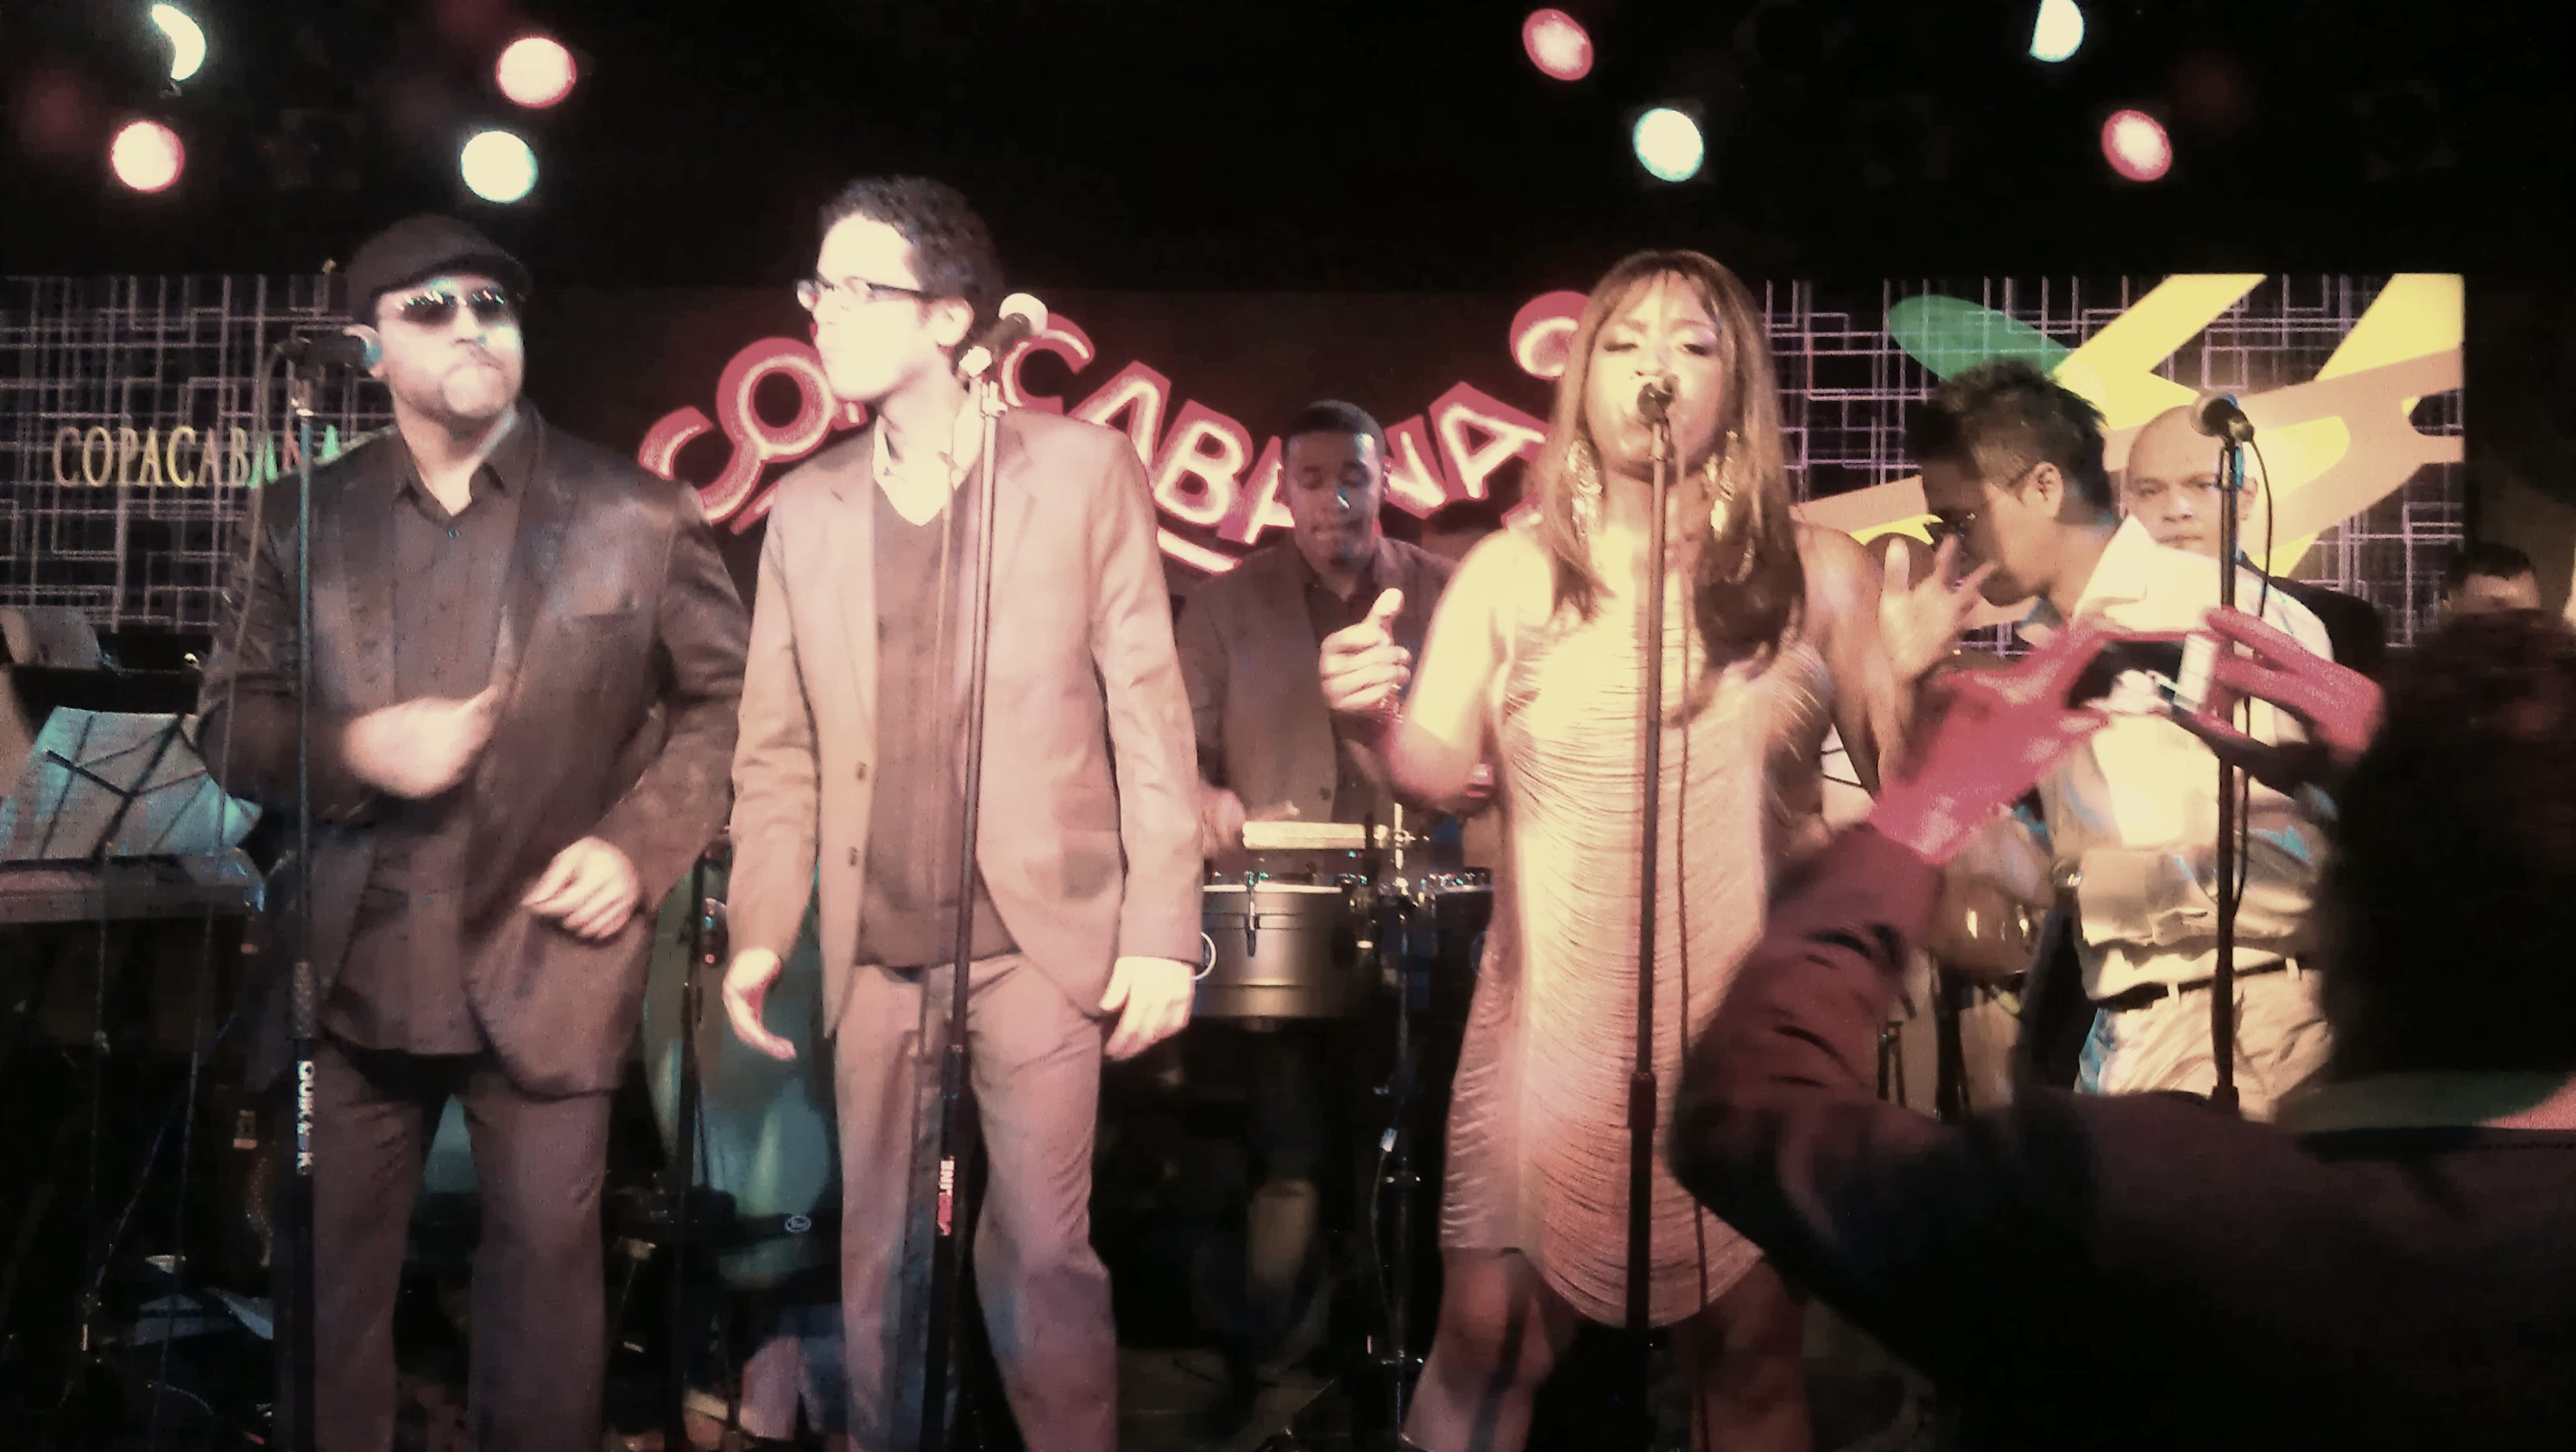 Photos: Our Latin Thing Live At The Copacabana 1/25/12